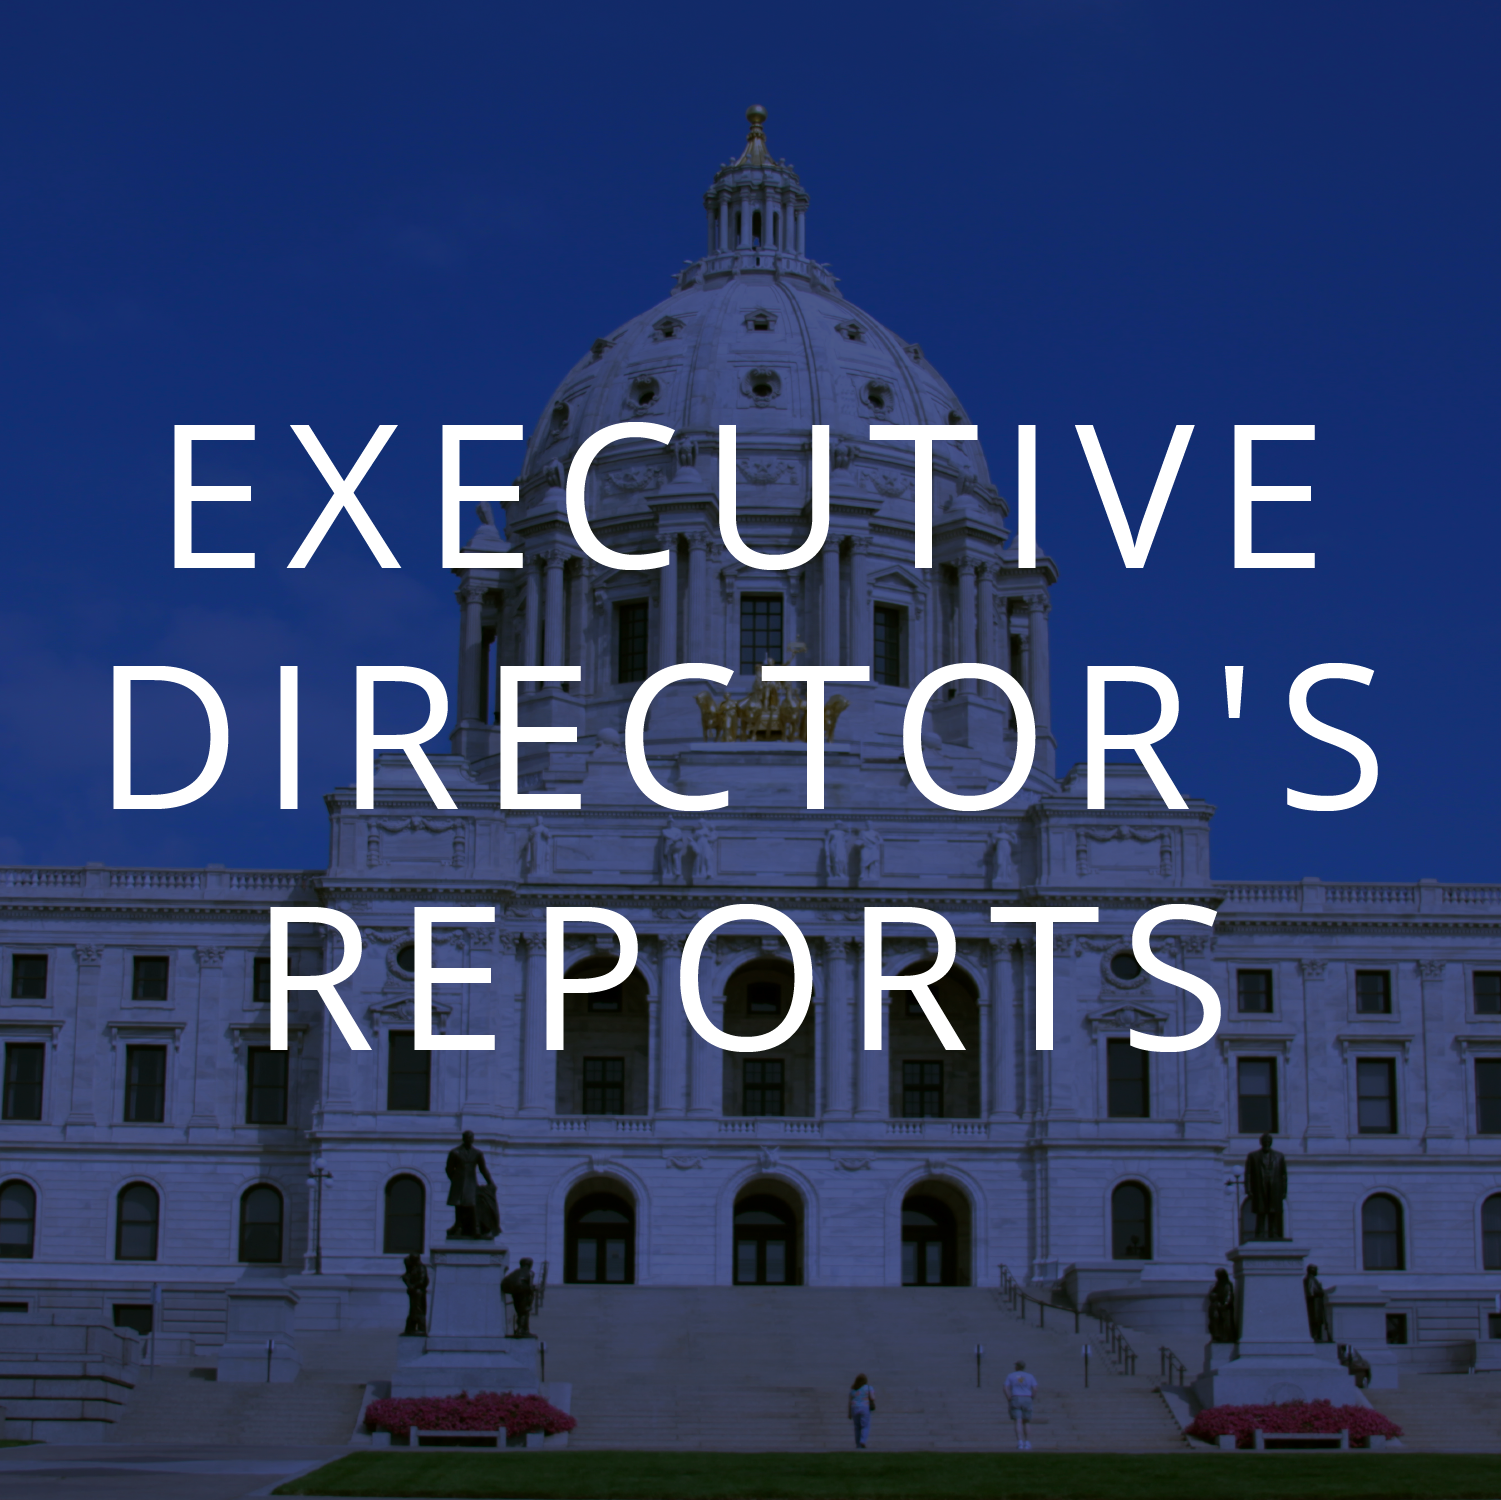 Executive Director's Reports